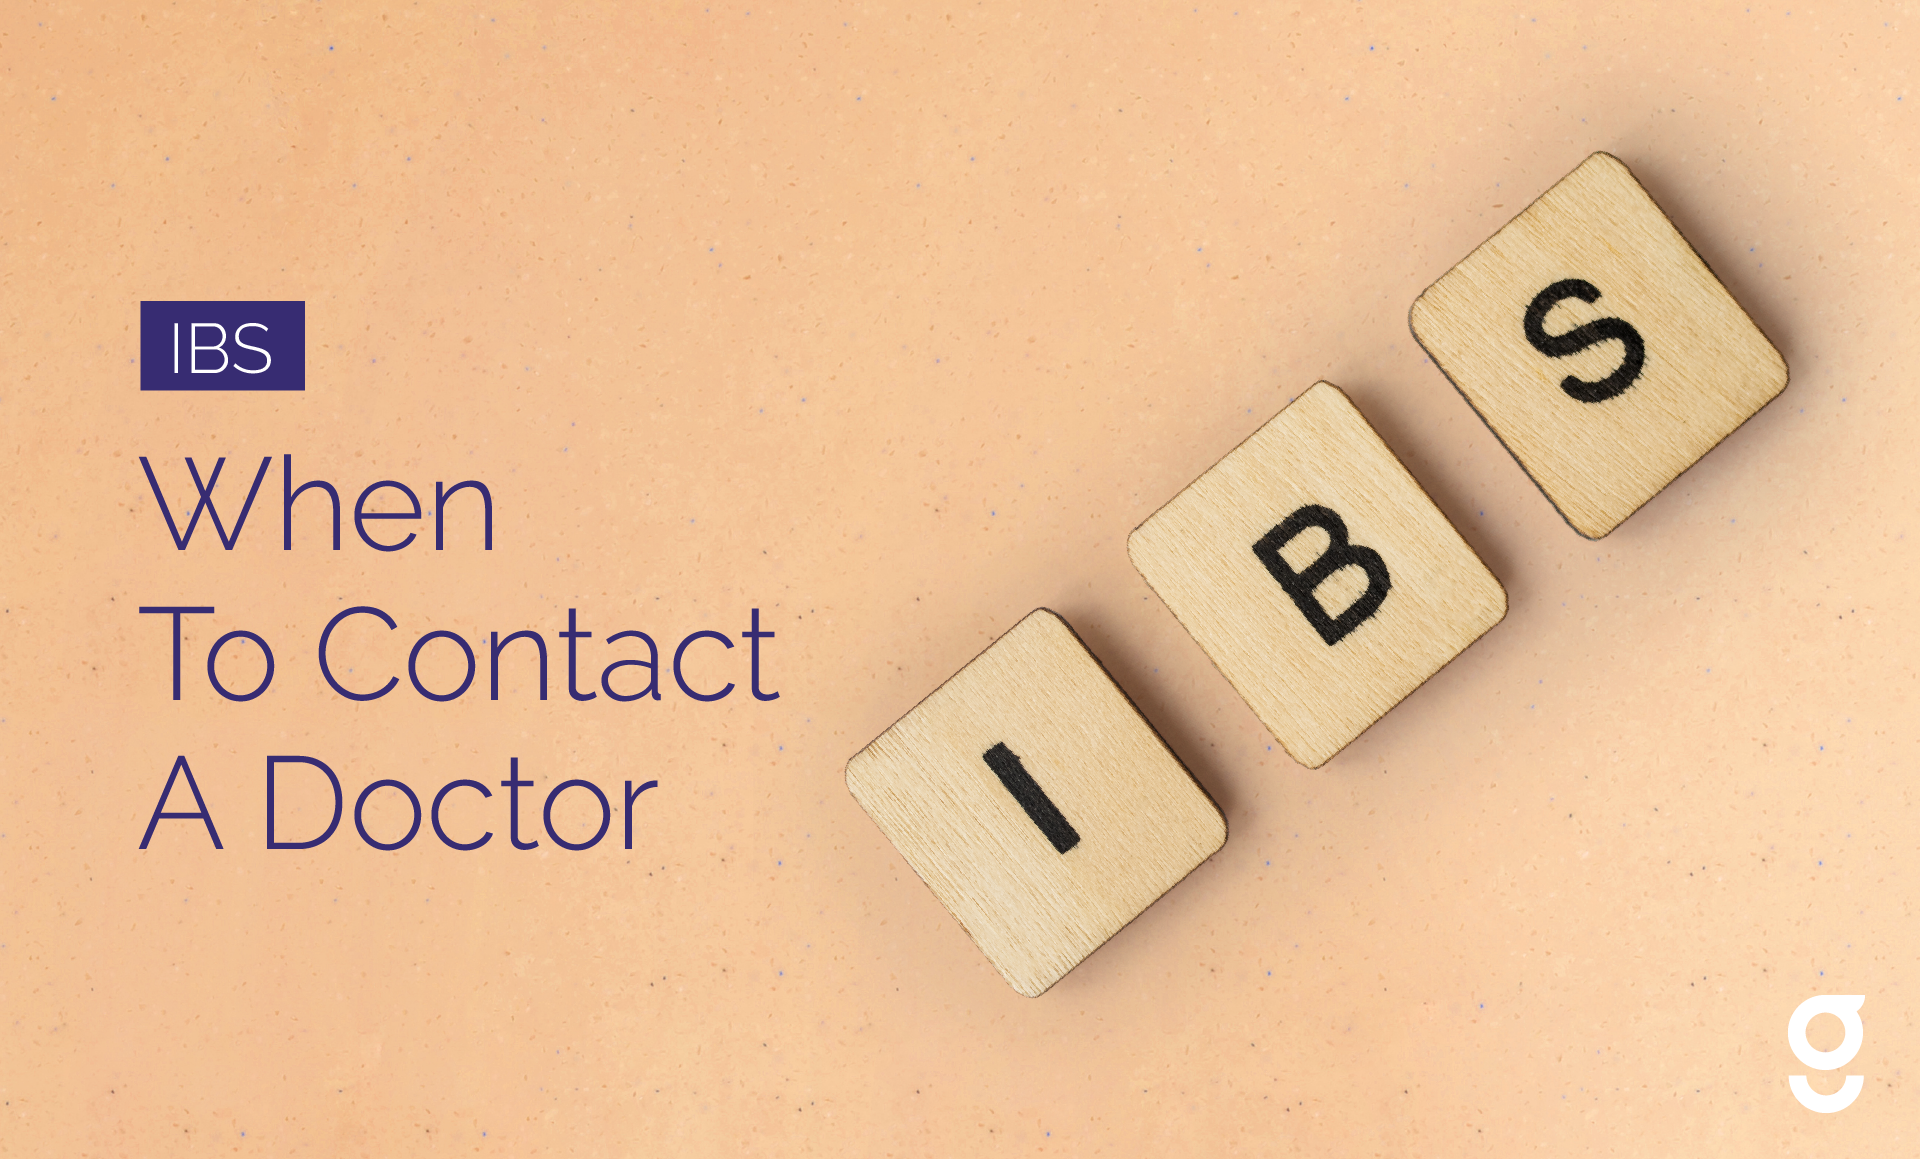 IBS: When To Contact Your Doctor